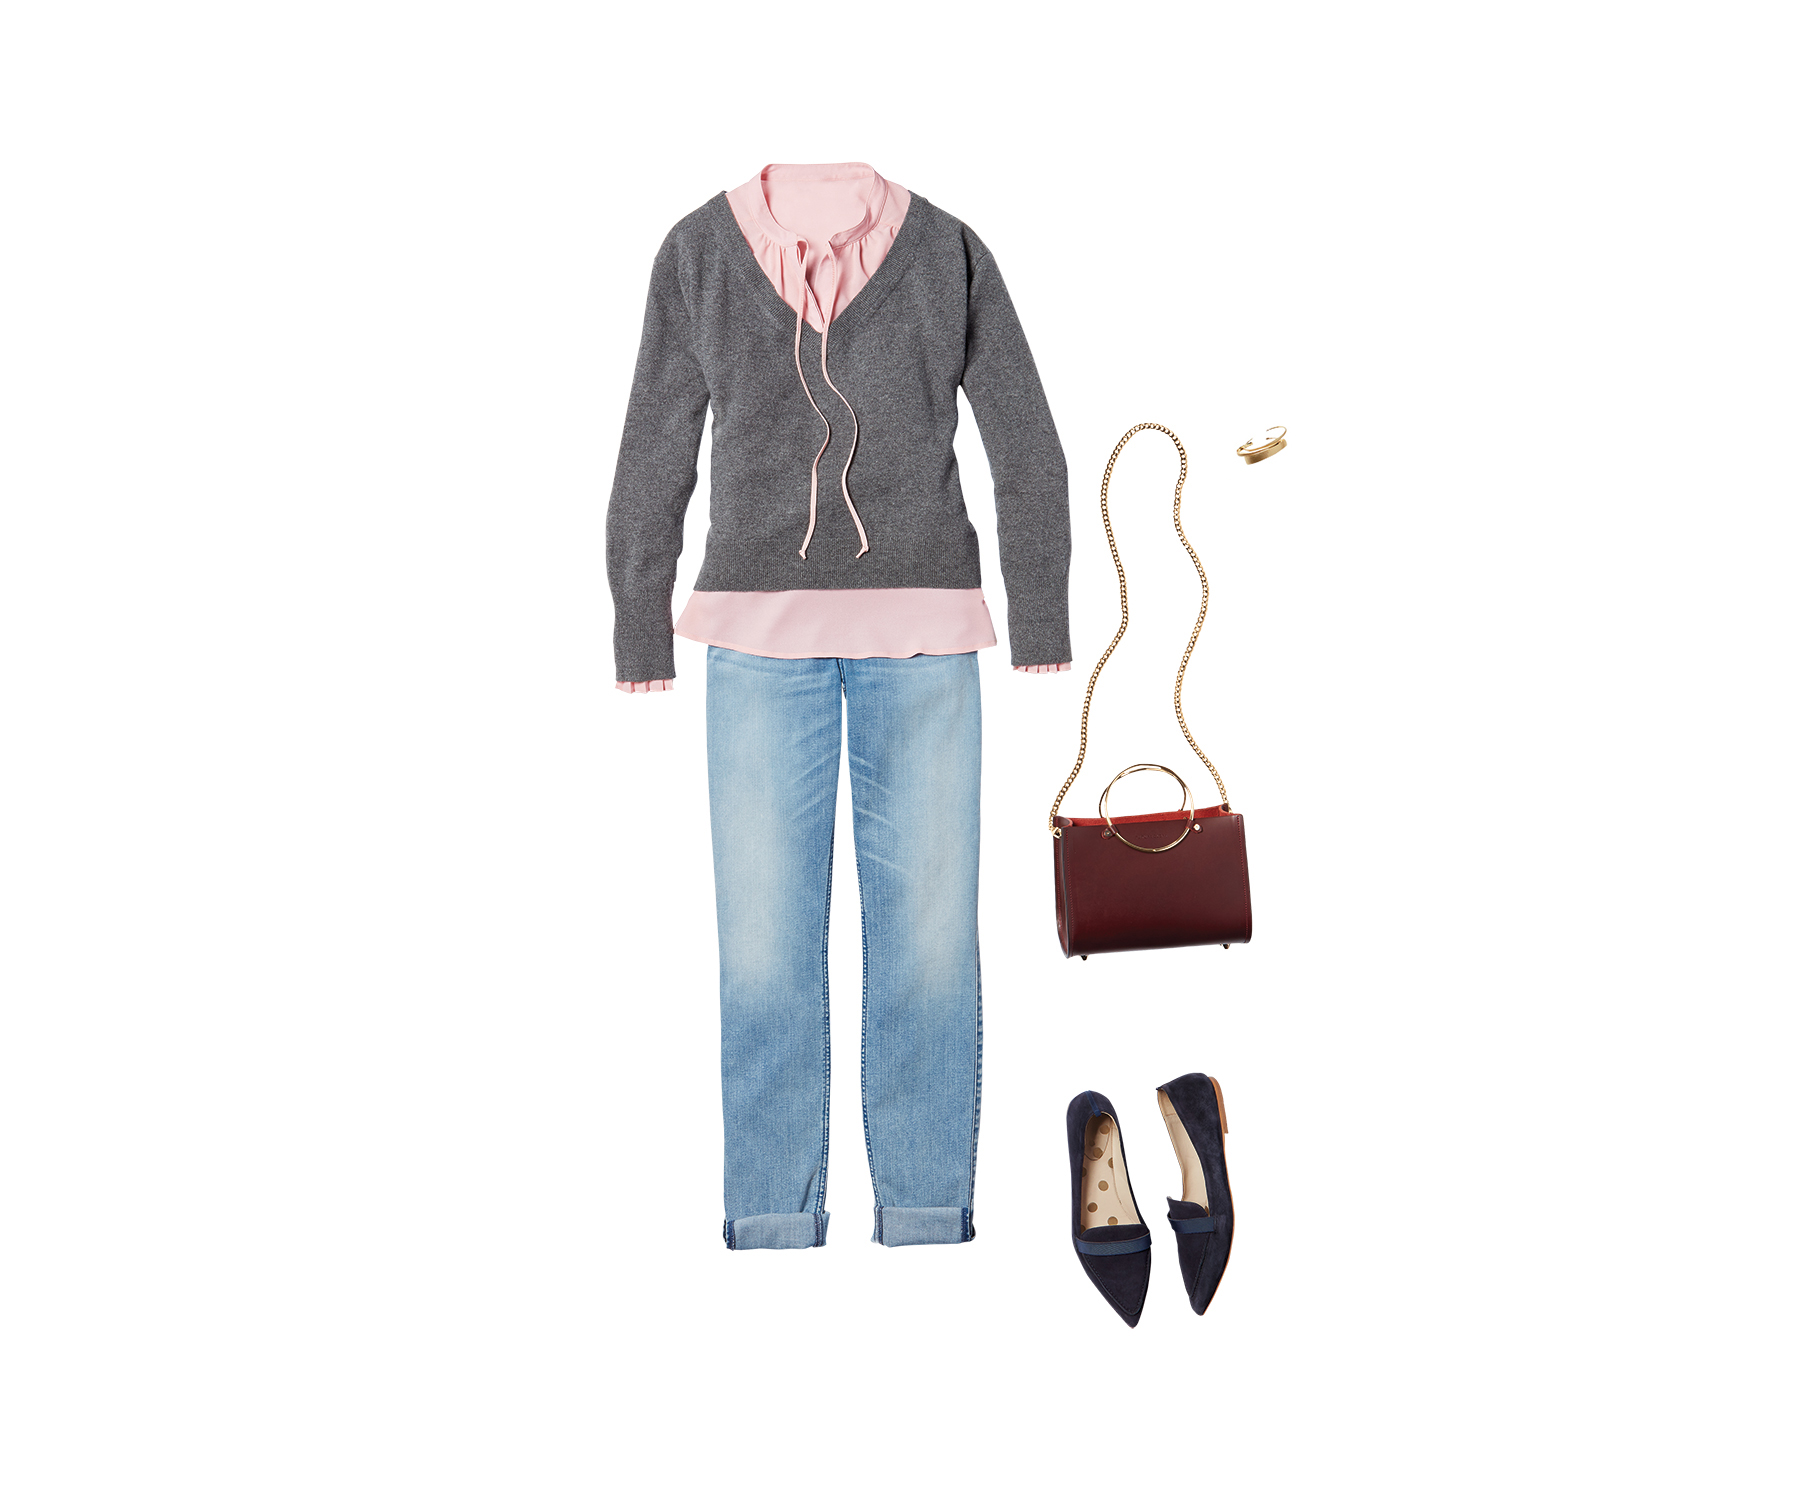 Sweater + Blouse + Jeans (0418STY)